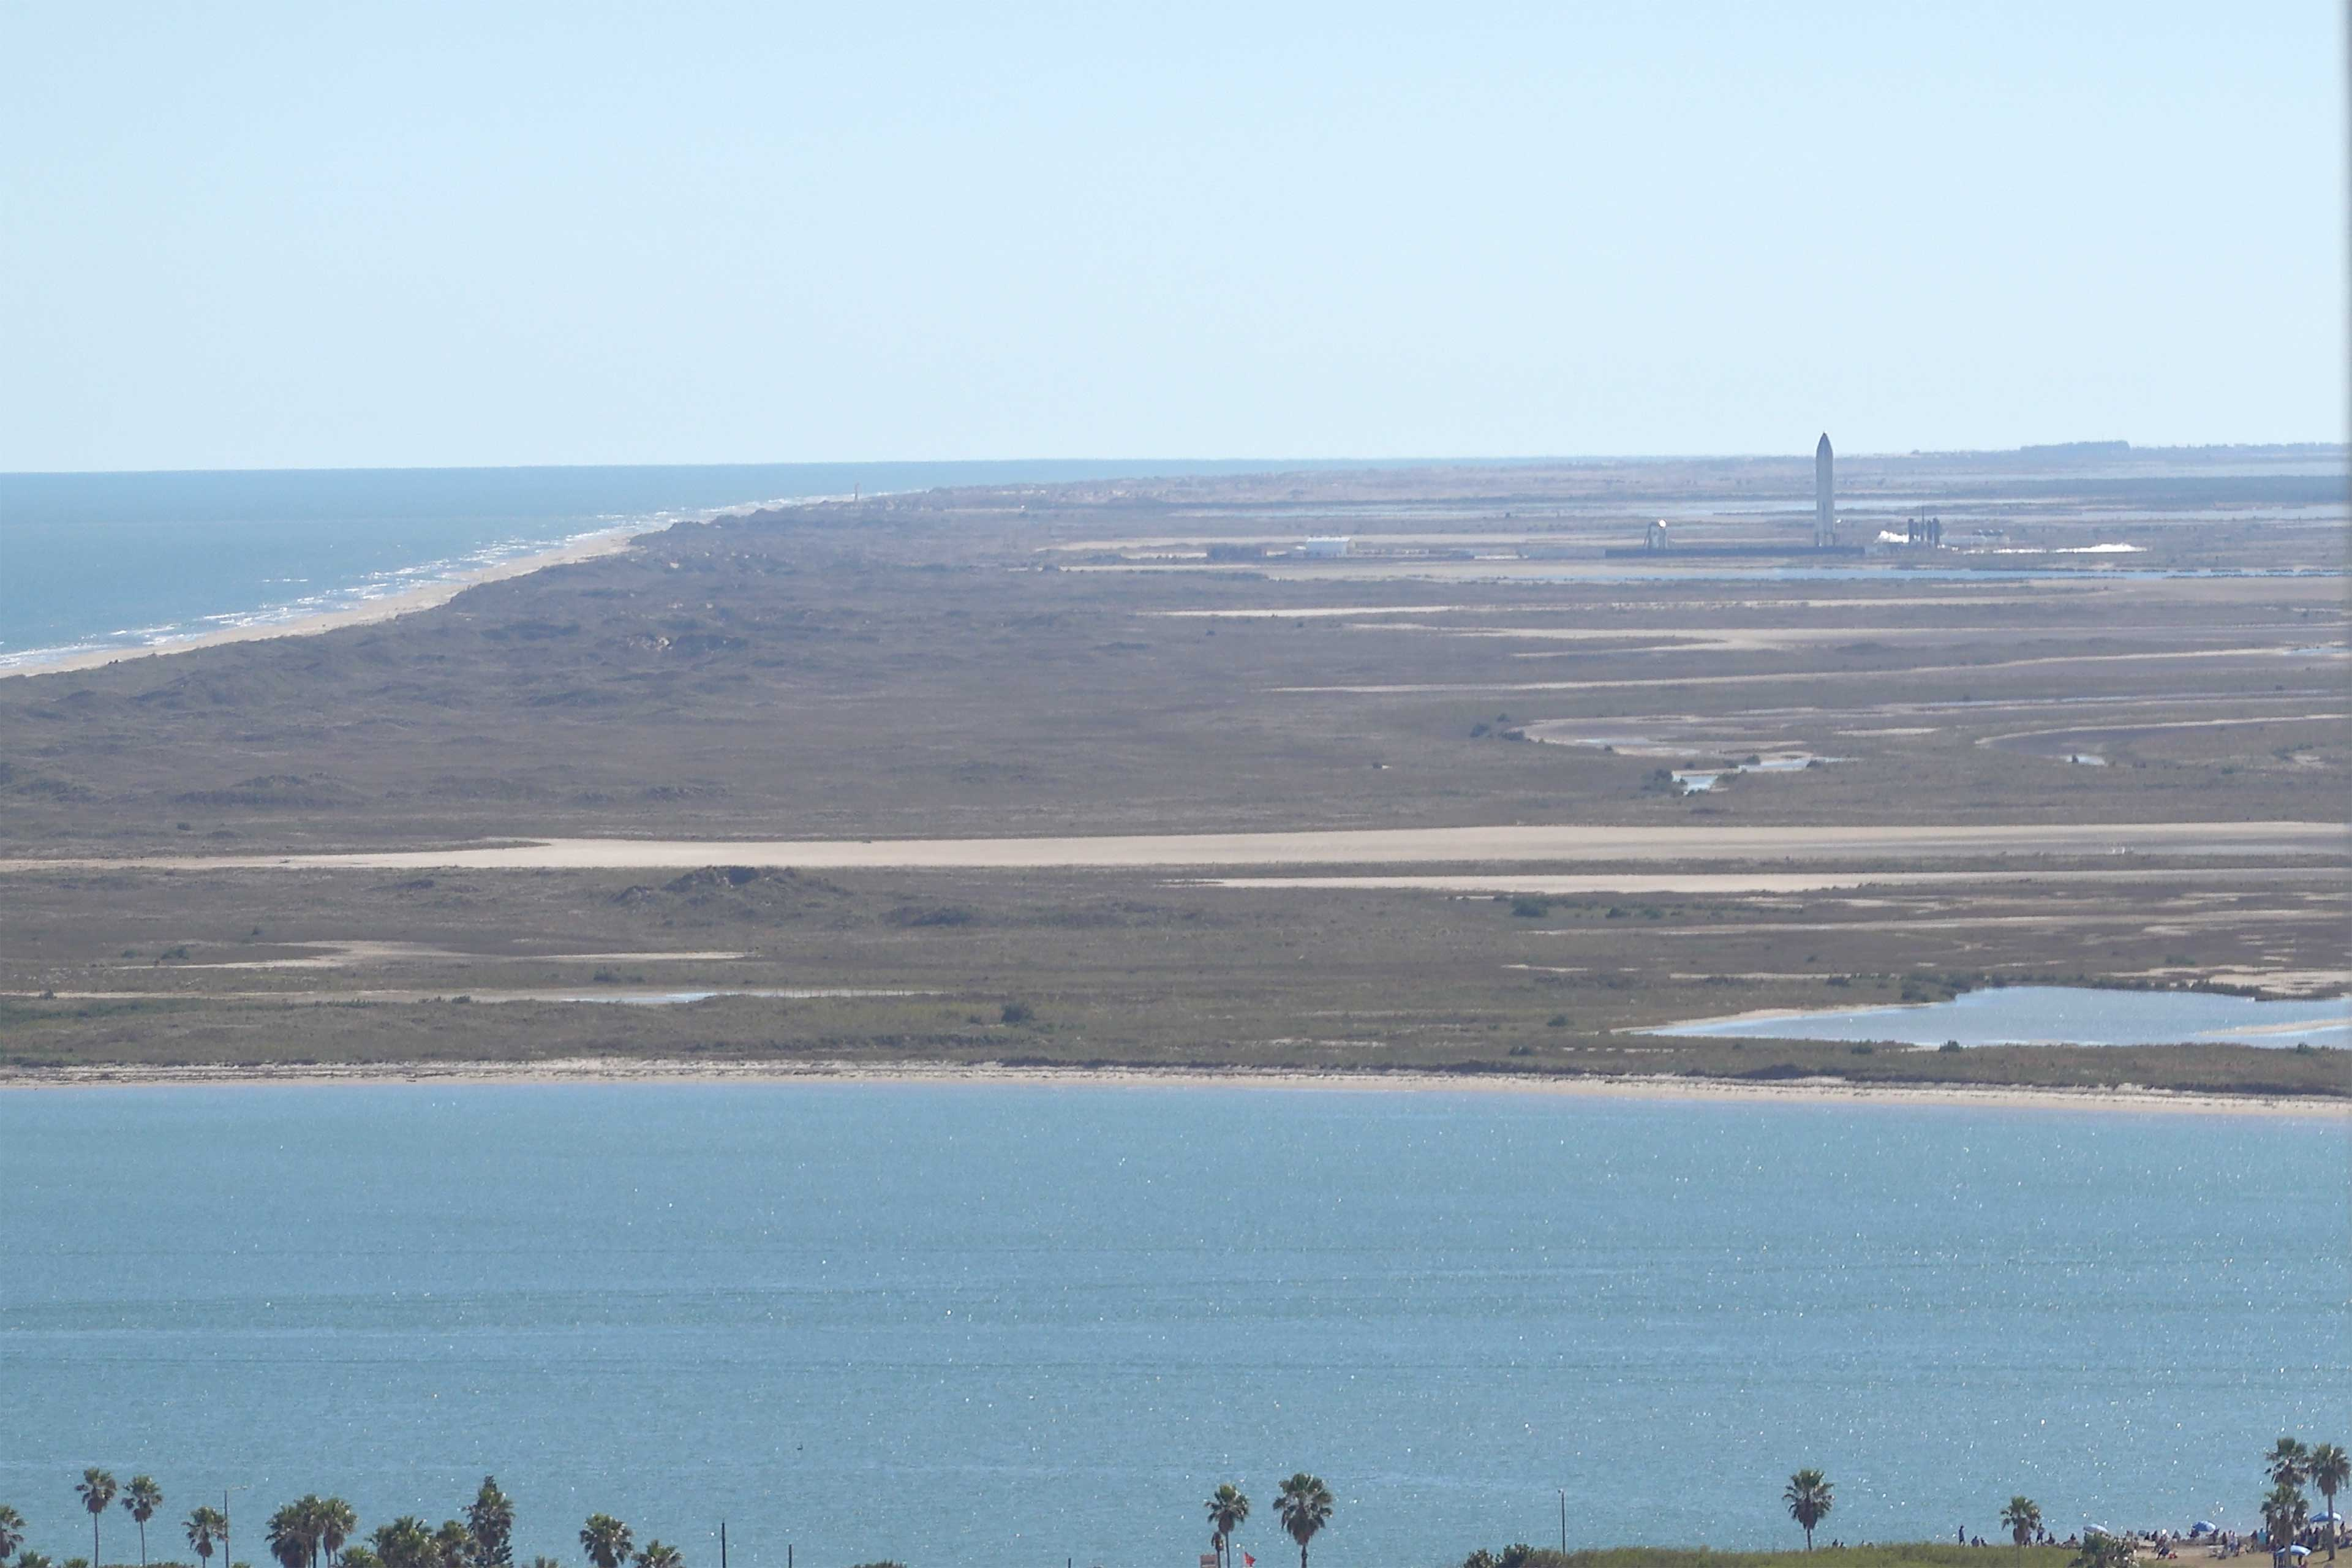 The SpaceX launch pad is only 6 miles away.